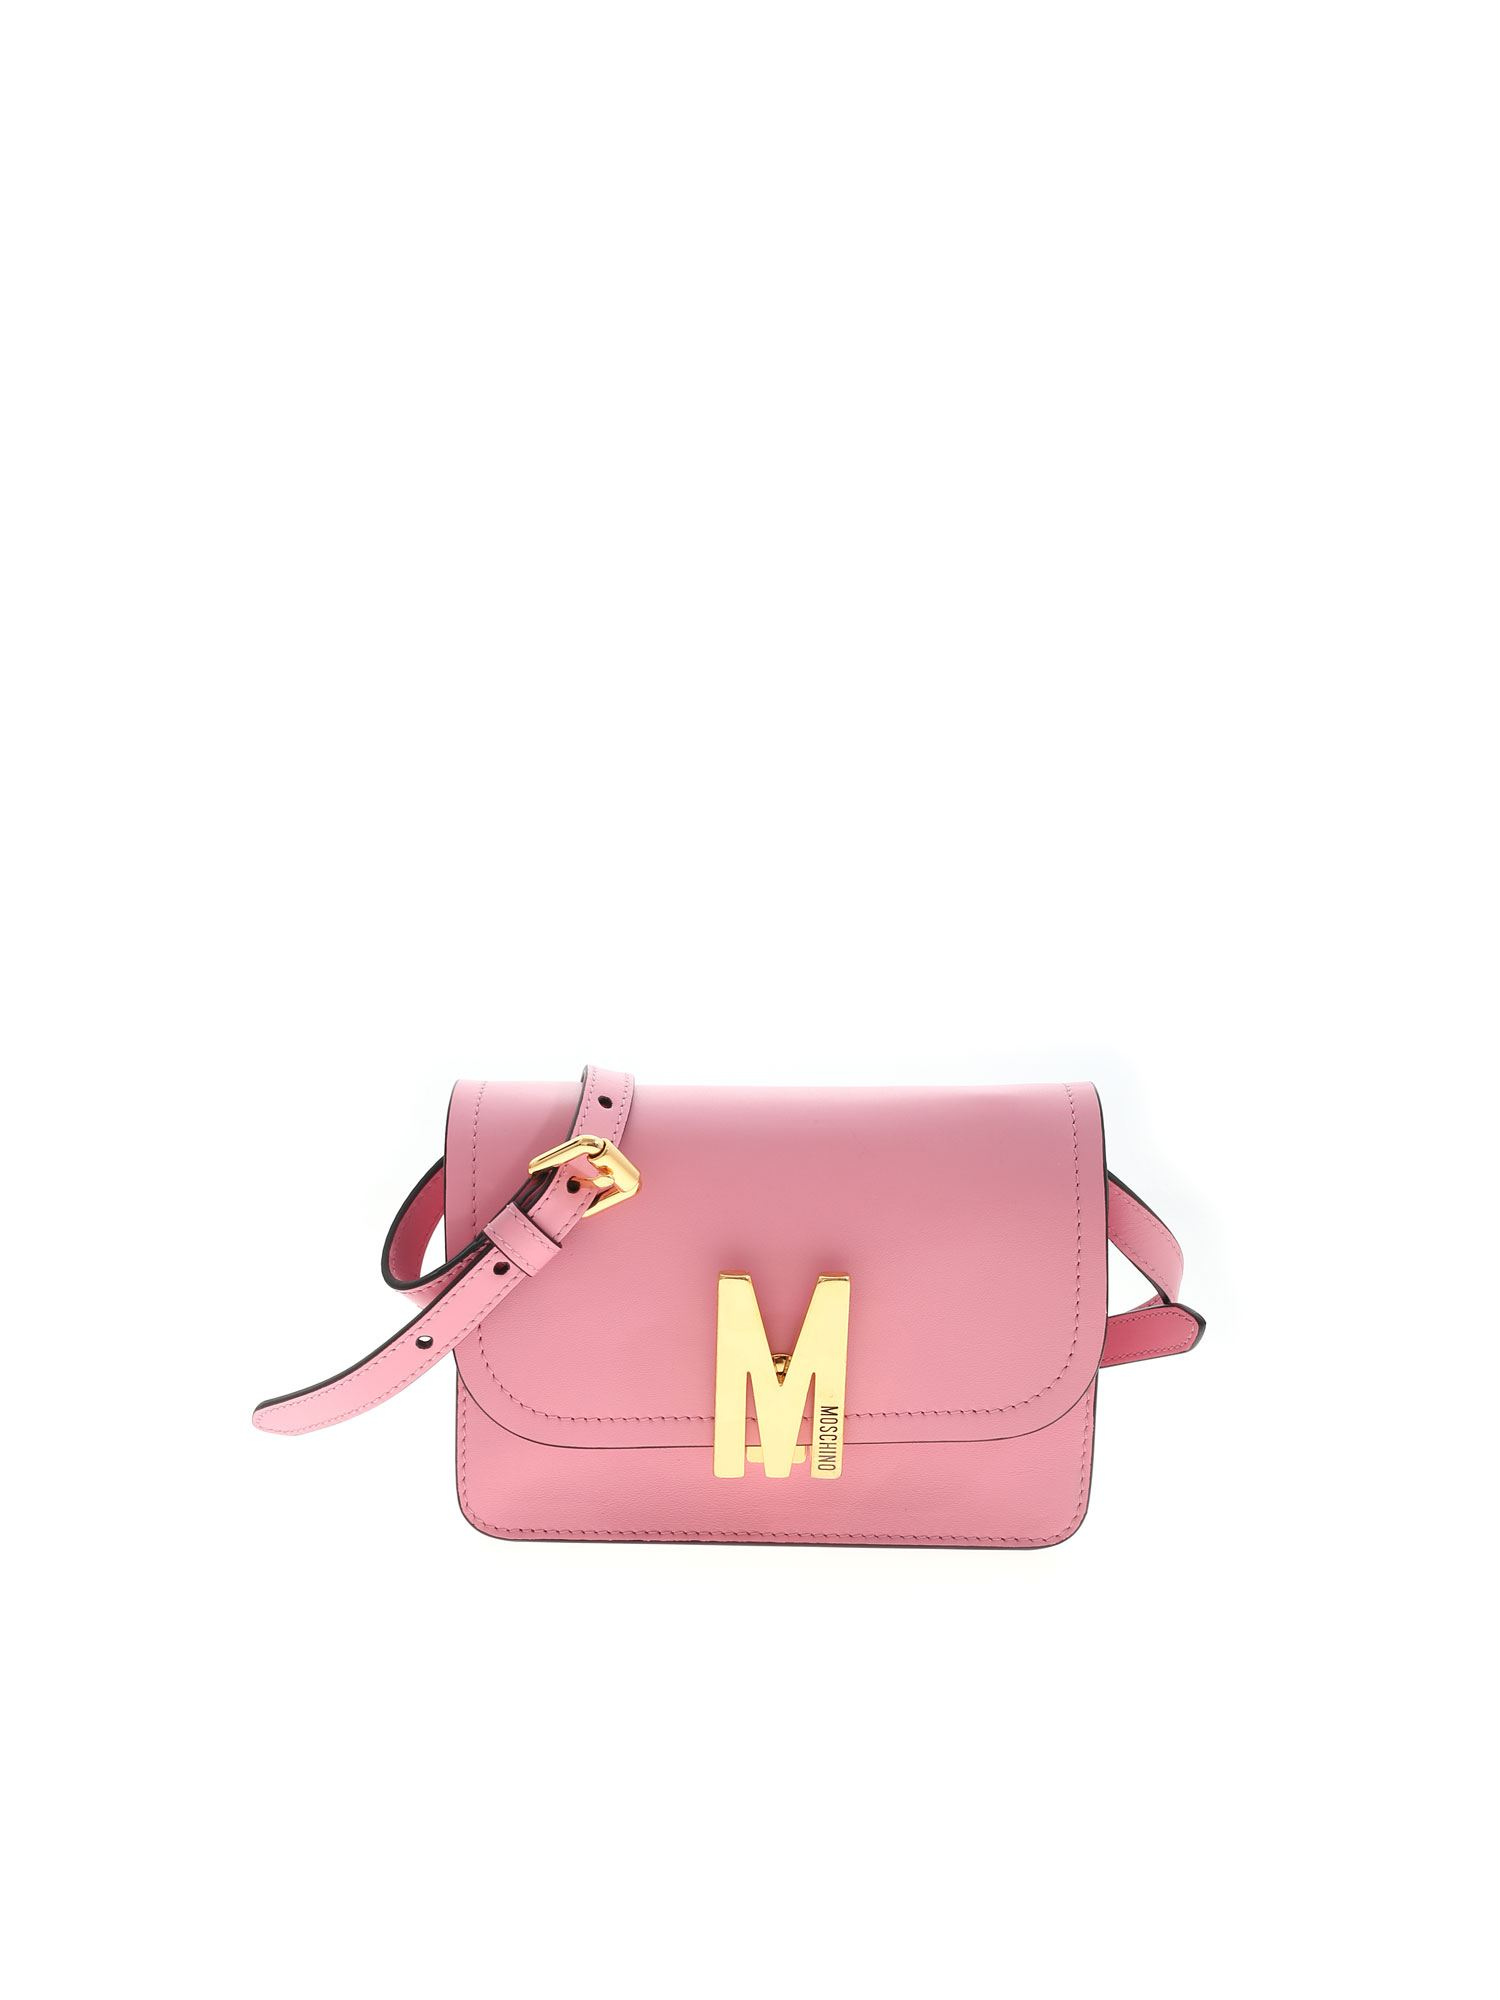 Moschino M LOGO BAG IN PINK